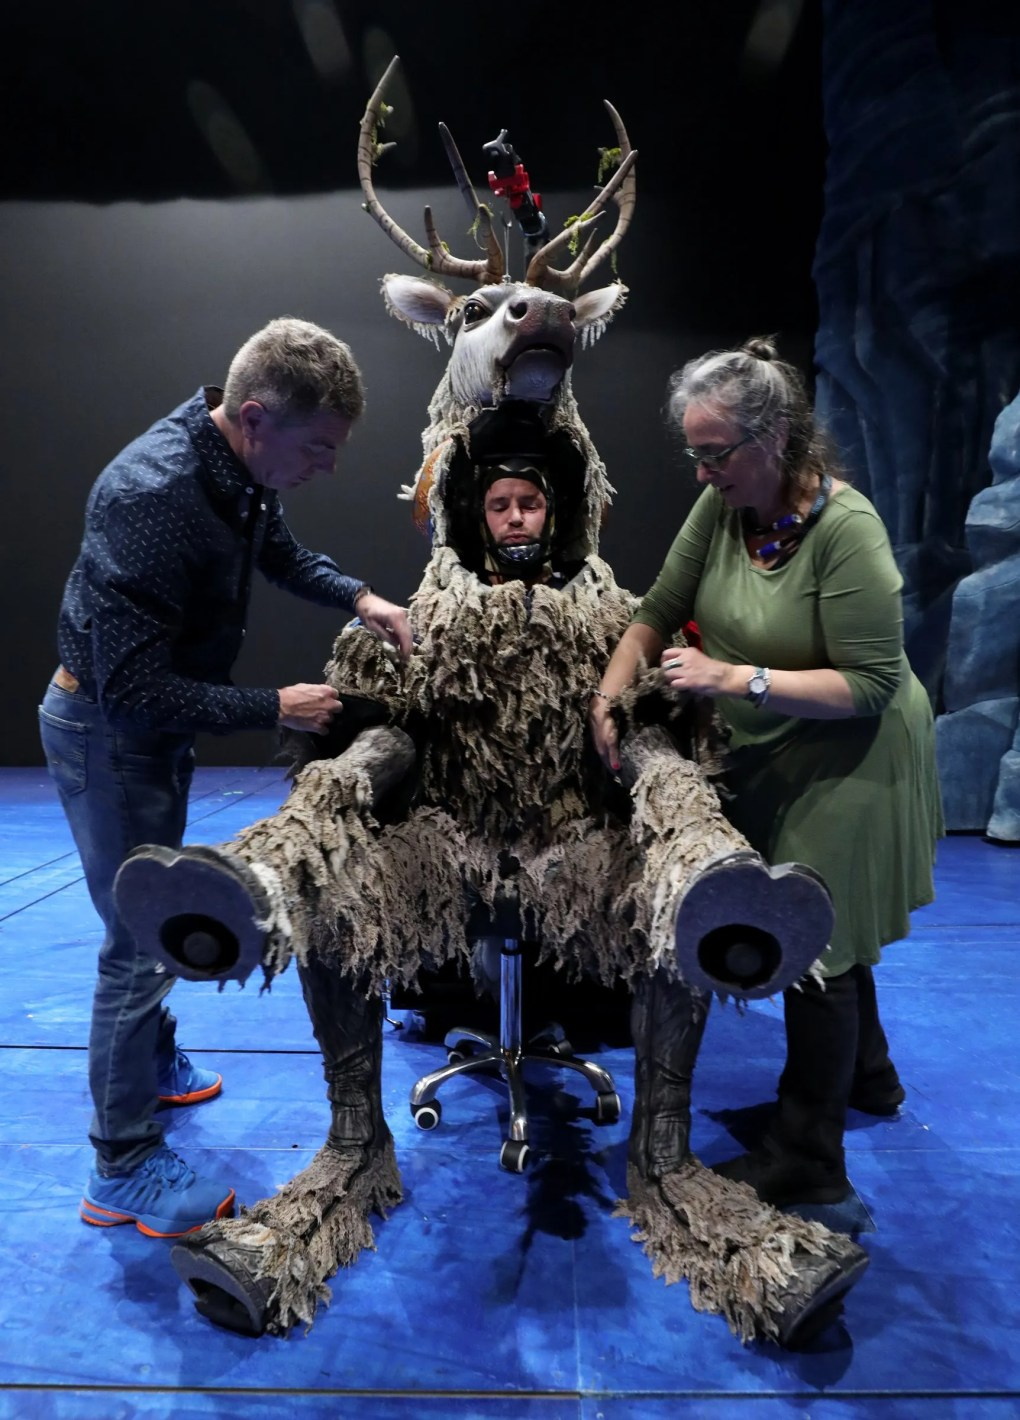 Go Backstage At Frozen At Seattle S Paramount Theatre And See How An Actor Becomes Sven The Reindeer The Seattle Times